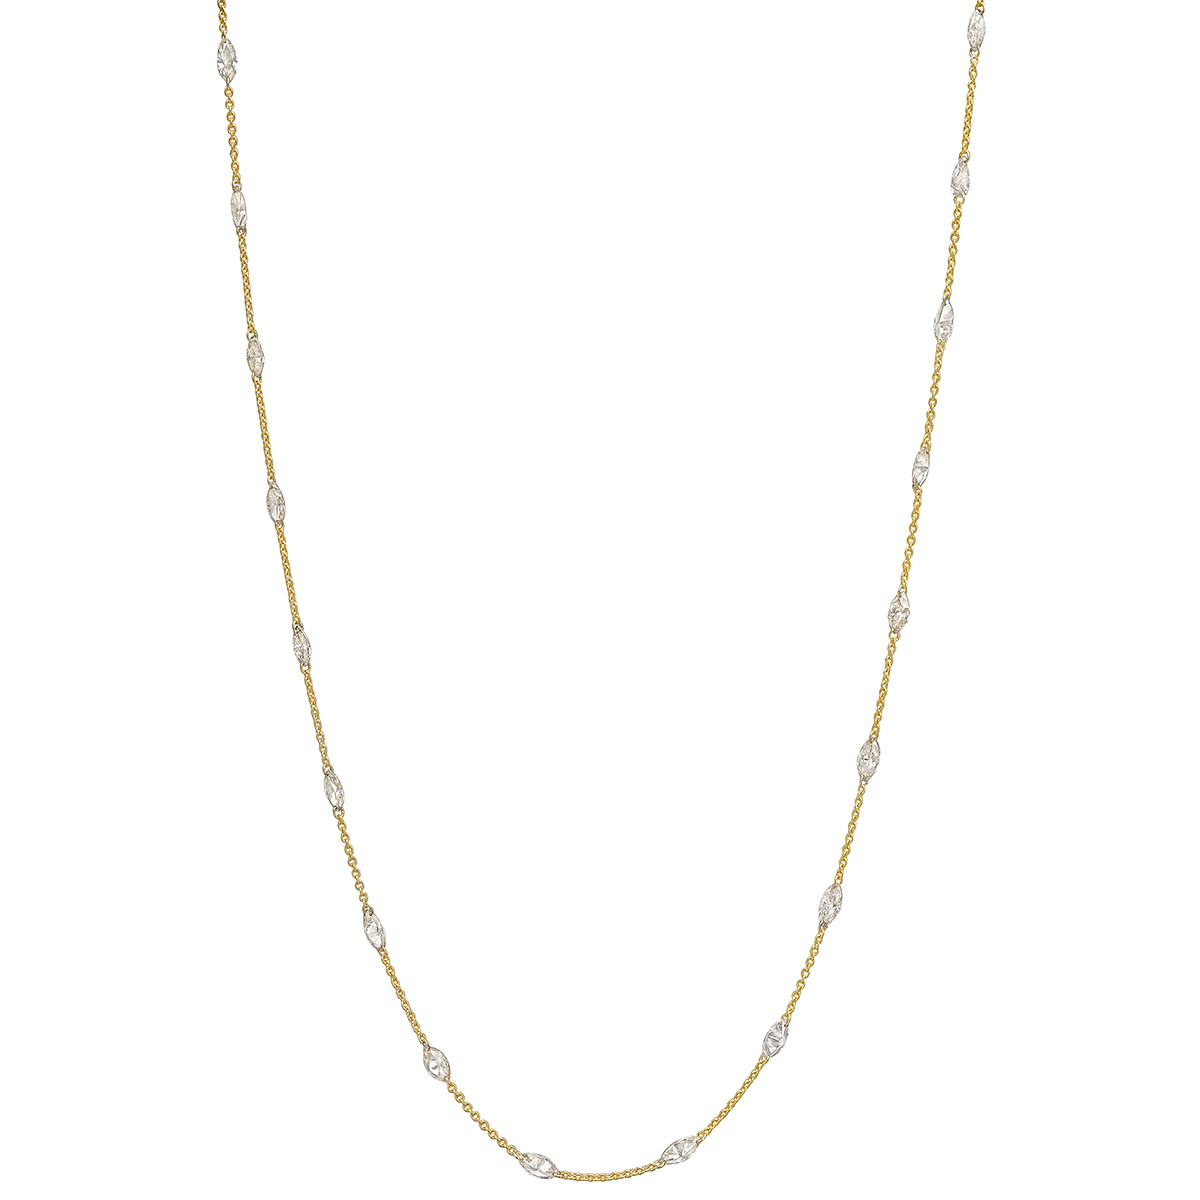 Mixed-Cut Diamond Chain Long Necklace (6.68 ct tw)